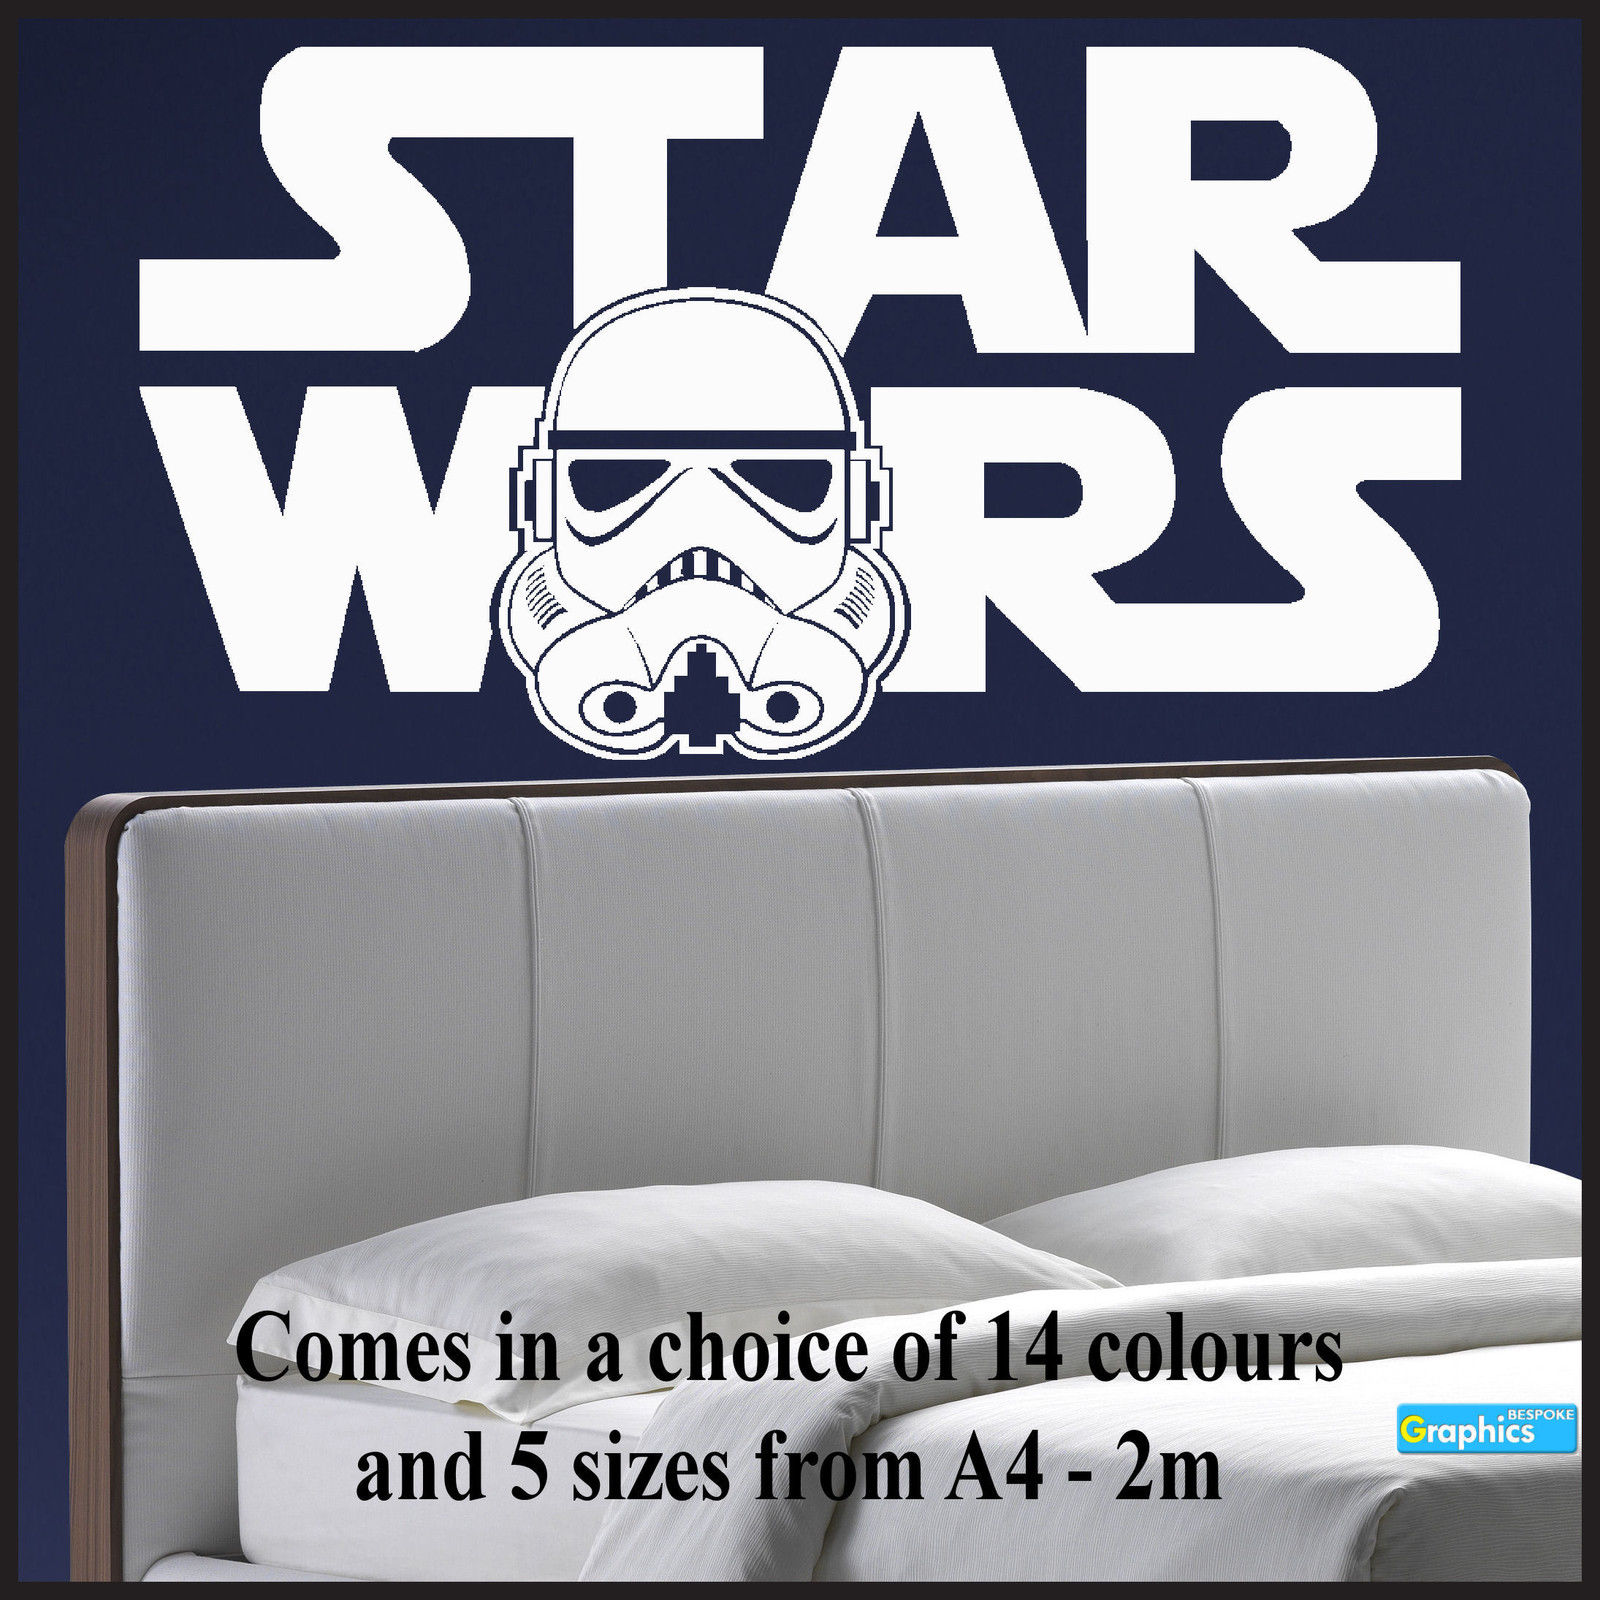 Large Starwars Bedroom Wall Art Sticker Of Logo Stormtrooper Head Transfer  Vinyl. Star ... Part 66